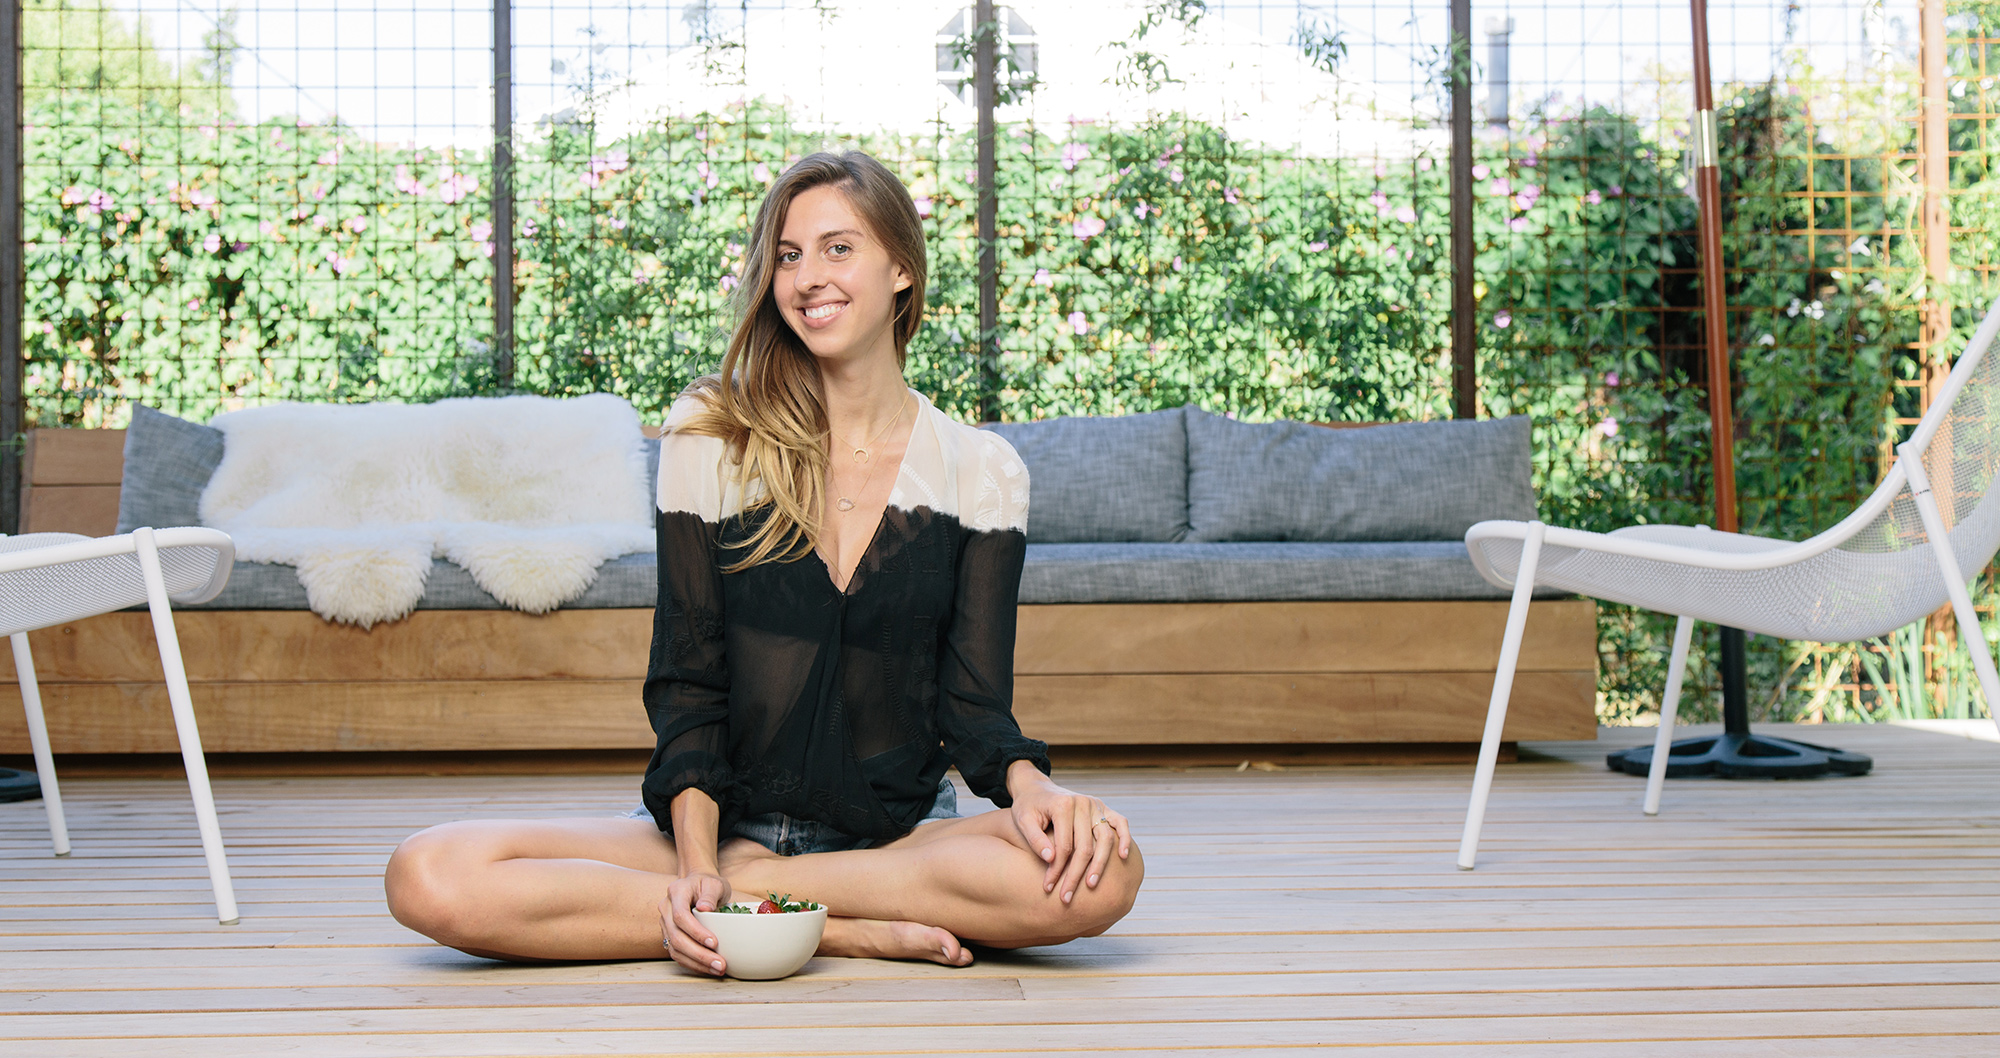 24 Hours in the Day of the Life of a Wellness Expert